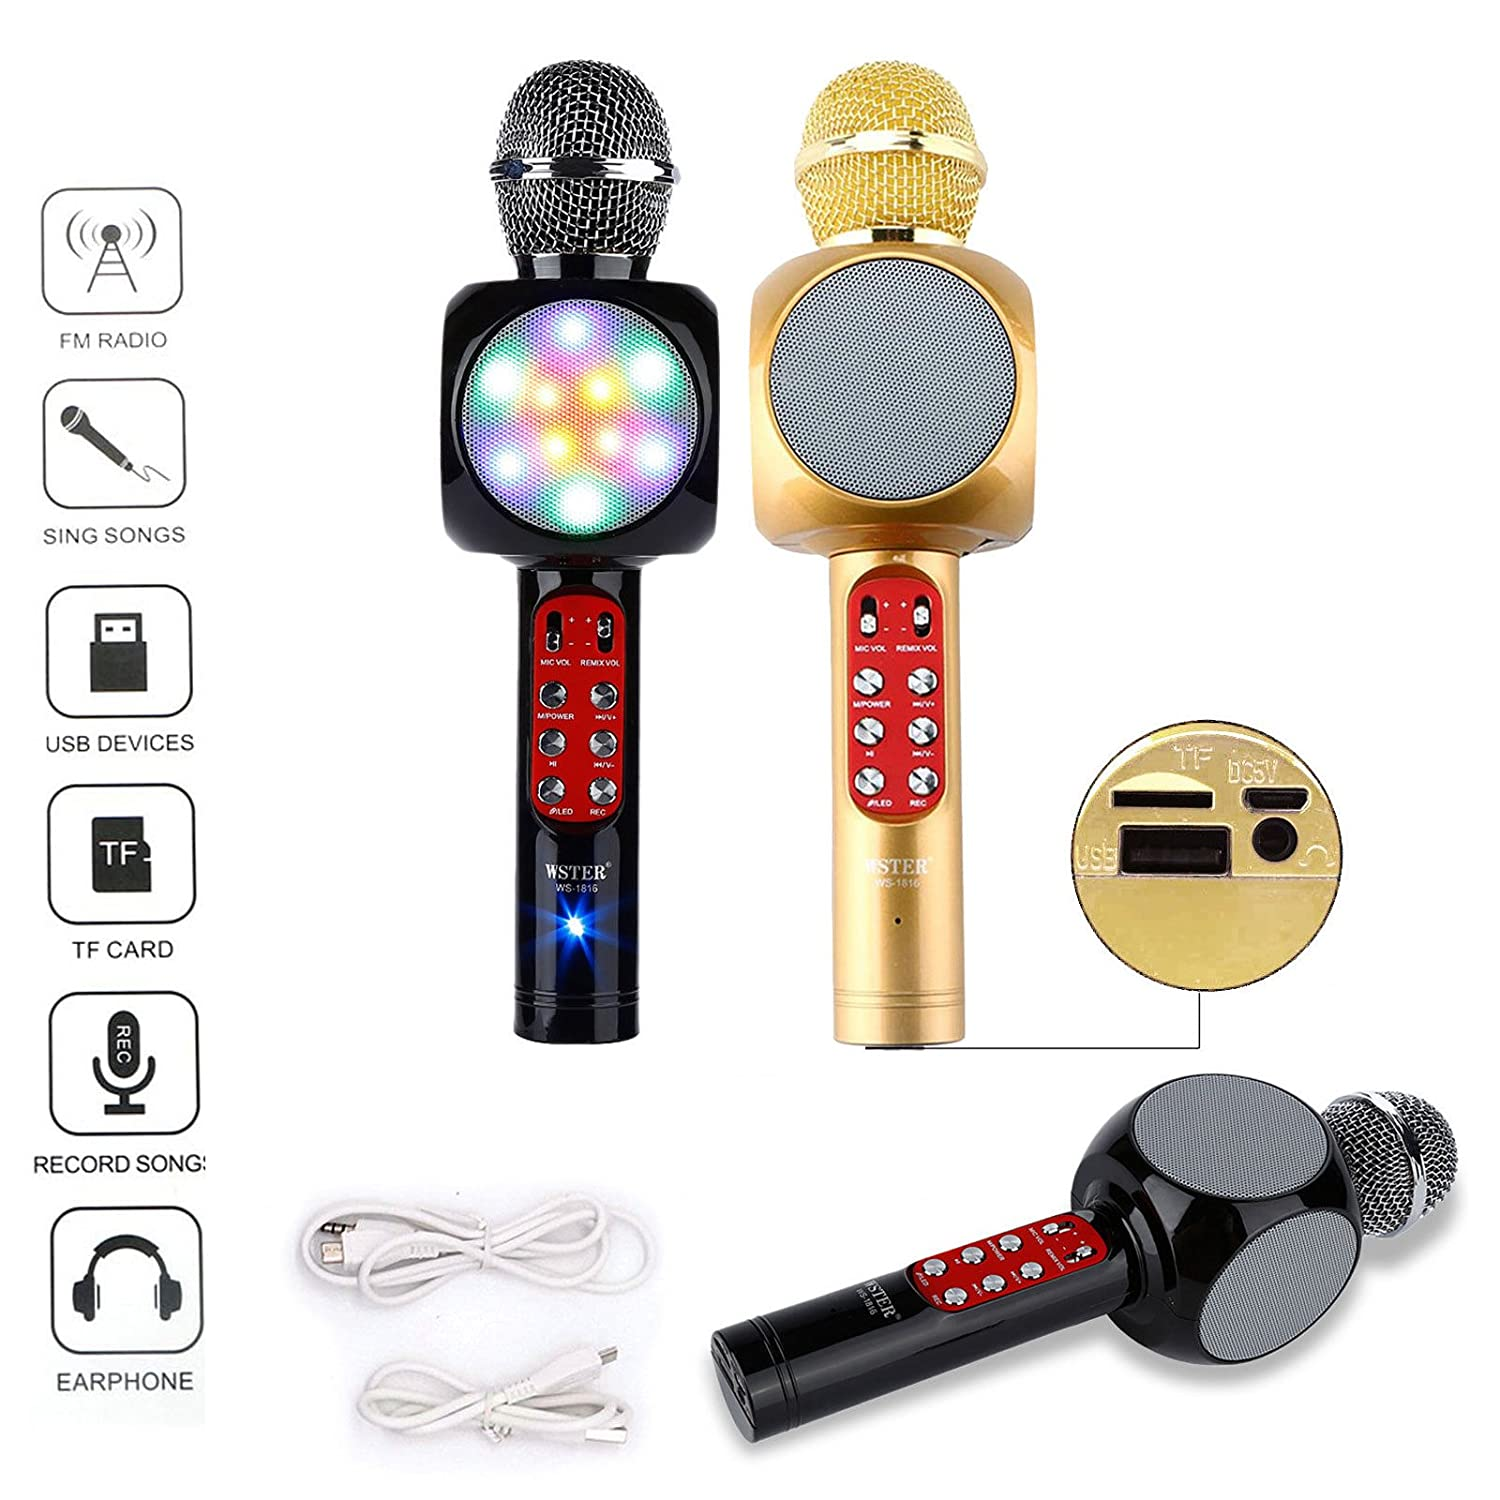 Wster Ws 1816 Wireless Bluetooth Karaoke Microphone Speaker Player Mic 858 Smule Home Ktv For Phone Musical Instruments